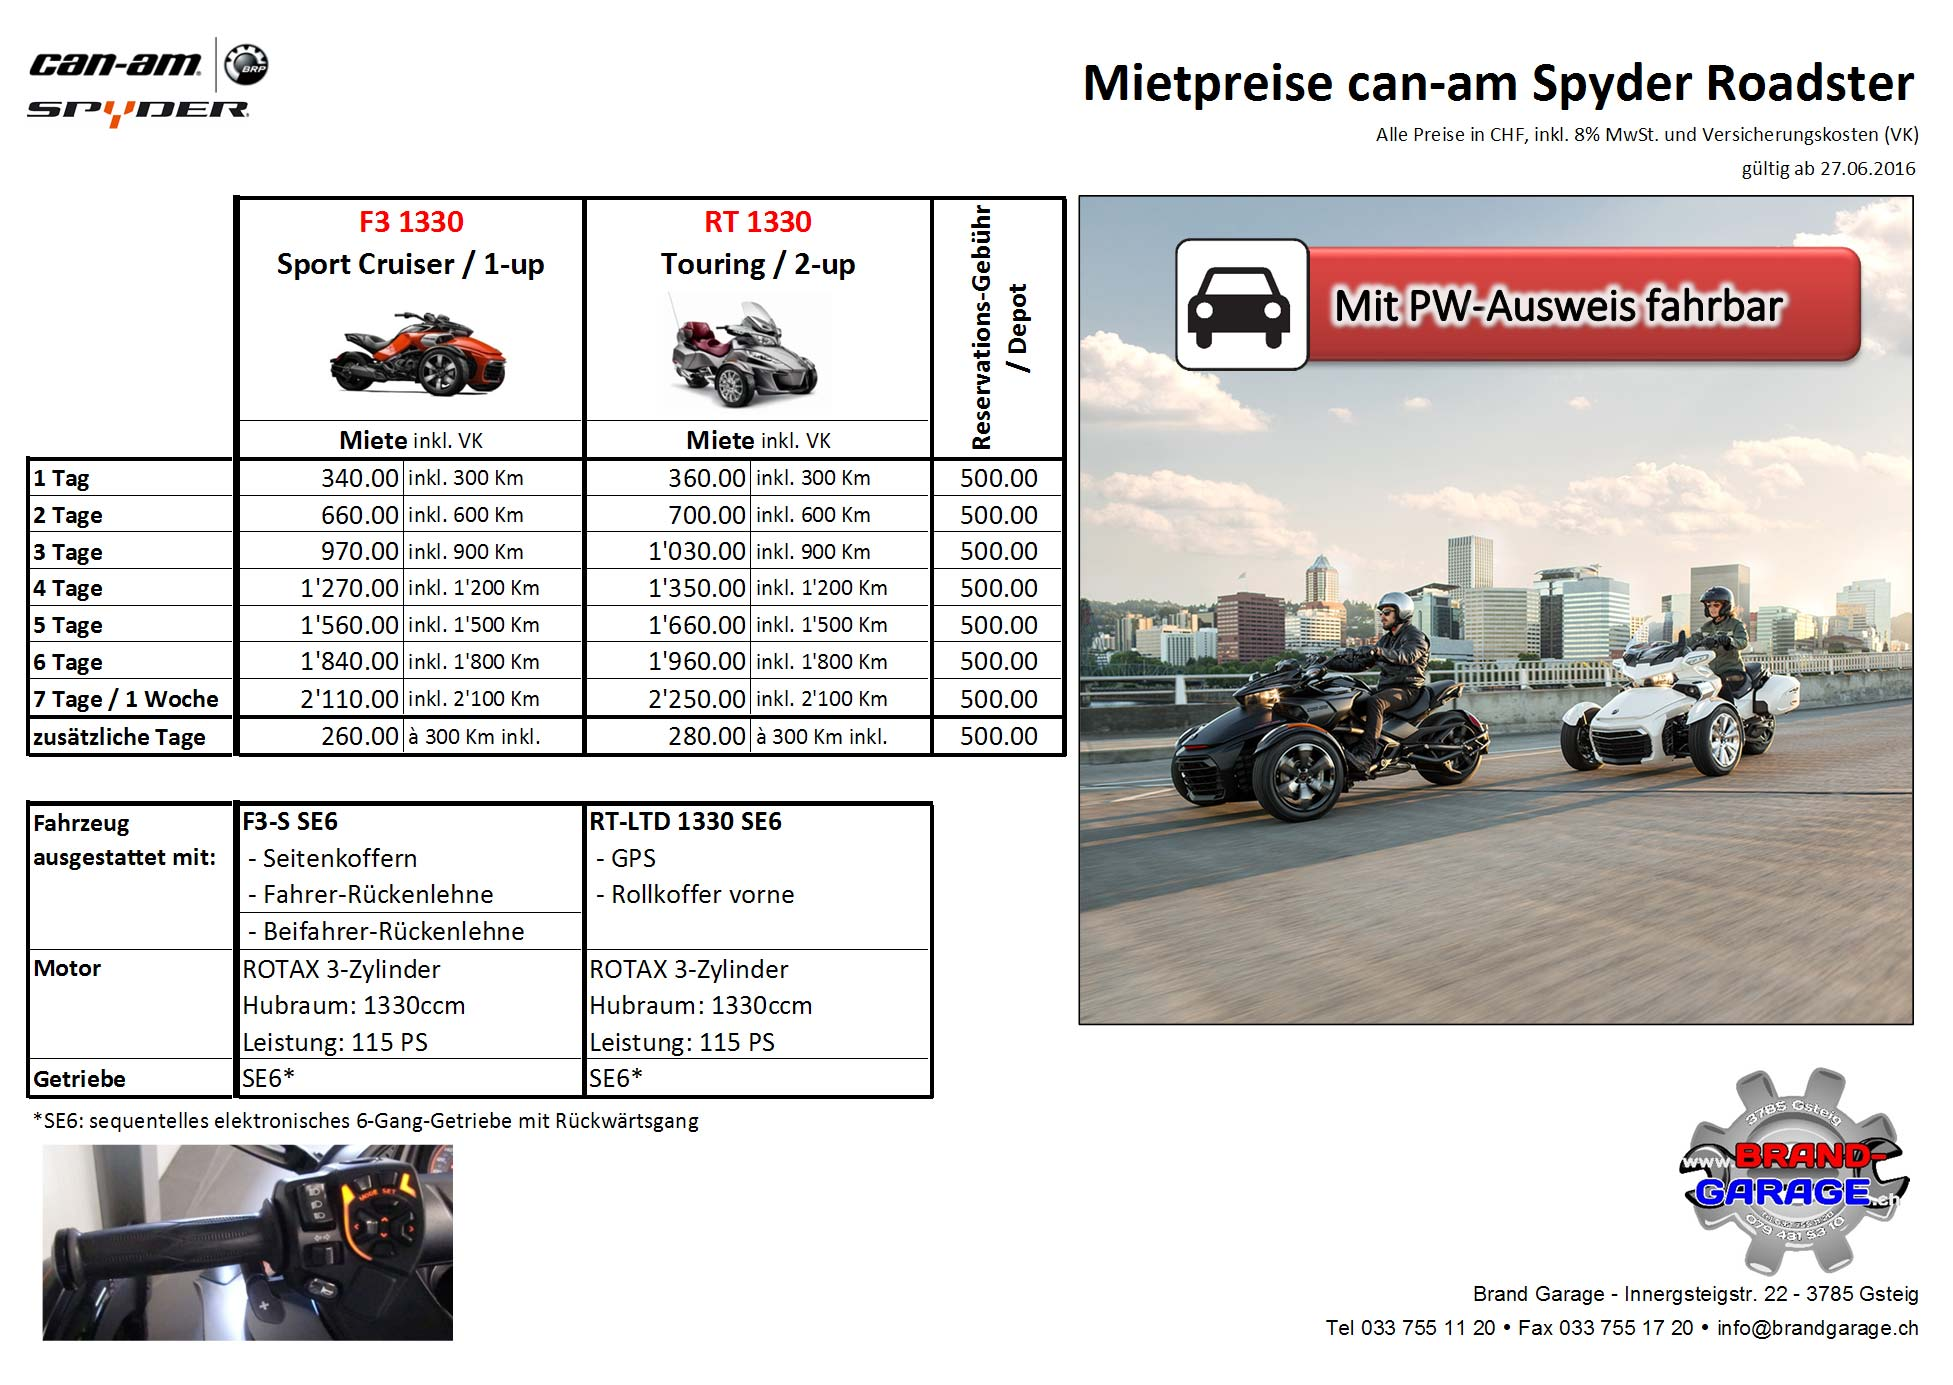 Mietpreisliste Can-Am Spyder Roadster